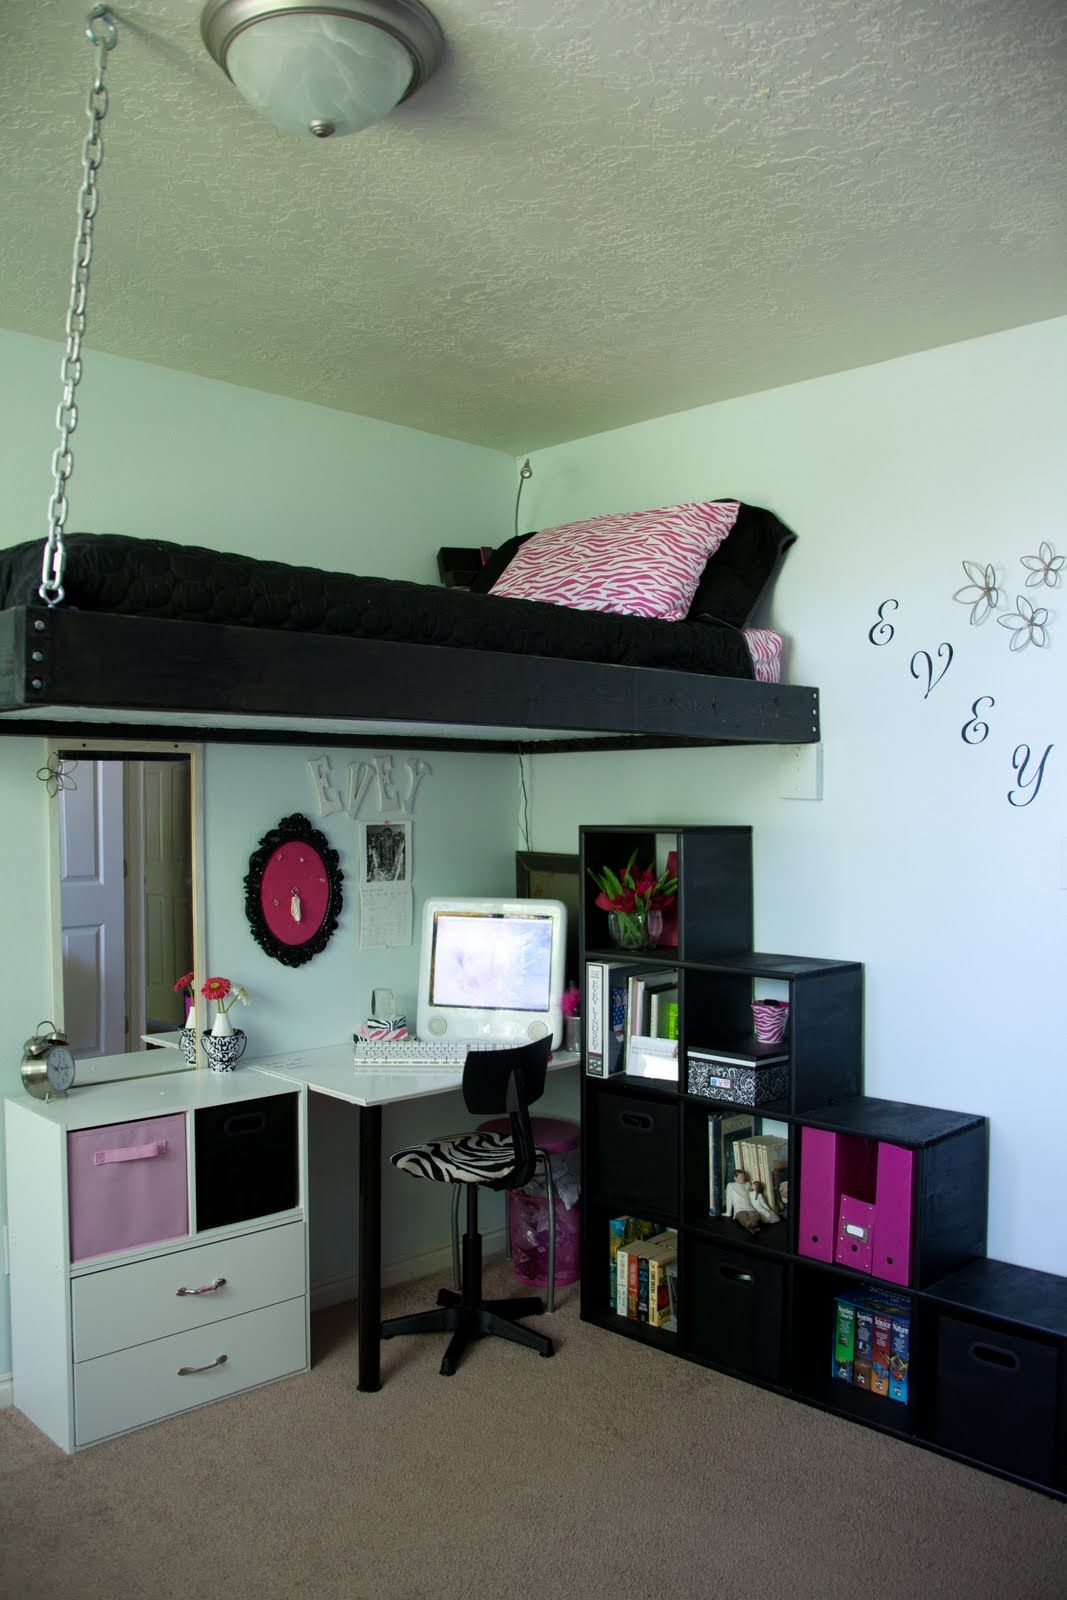 Kinky Bedroom Stuff Homemade Loft Bed Great Way To Save Space Cute Home Stuff